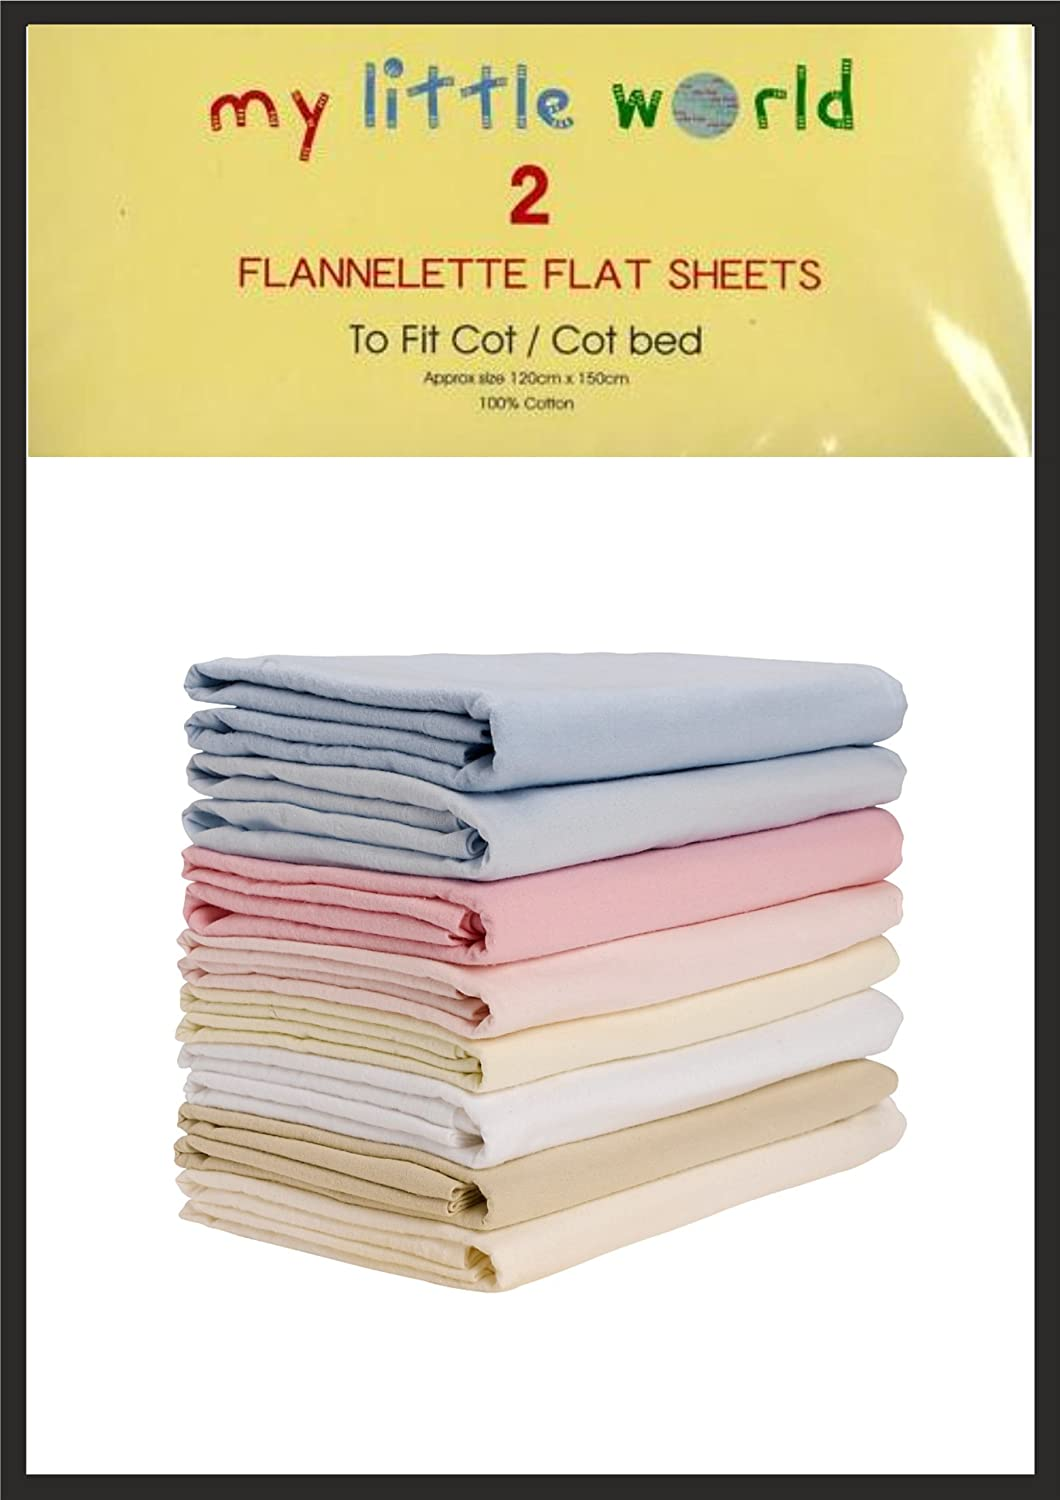 Cot / Cot Bed White Flannelette Flat Sheets Baby Nursery Bedding Soft Touch Pack of 2 100% Cotton My Little World 5029497700250